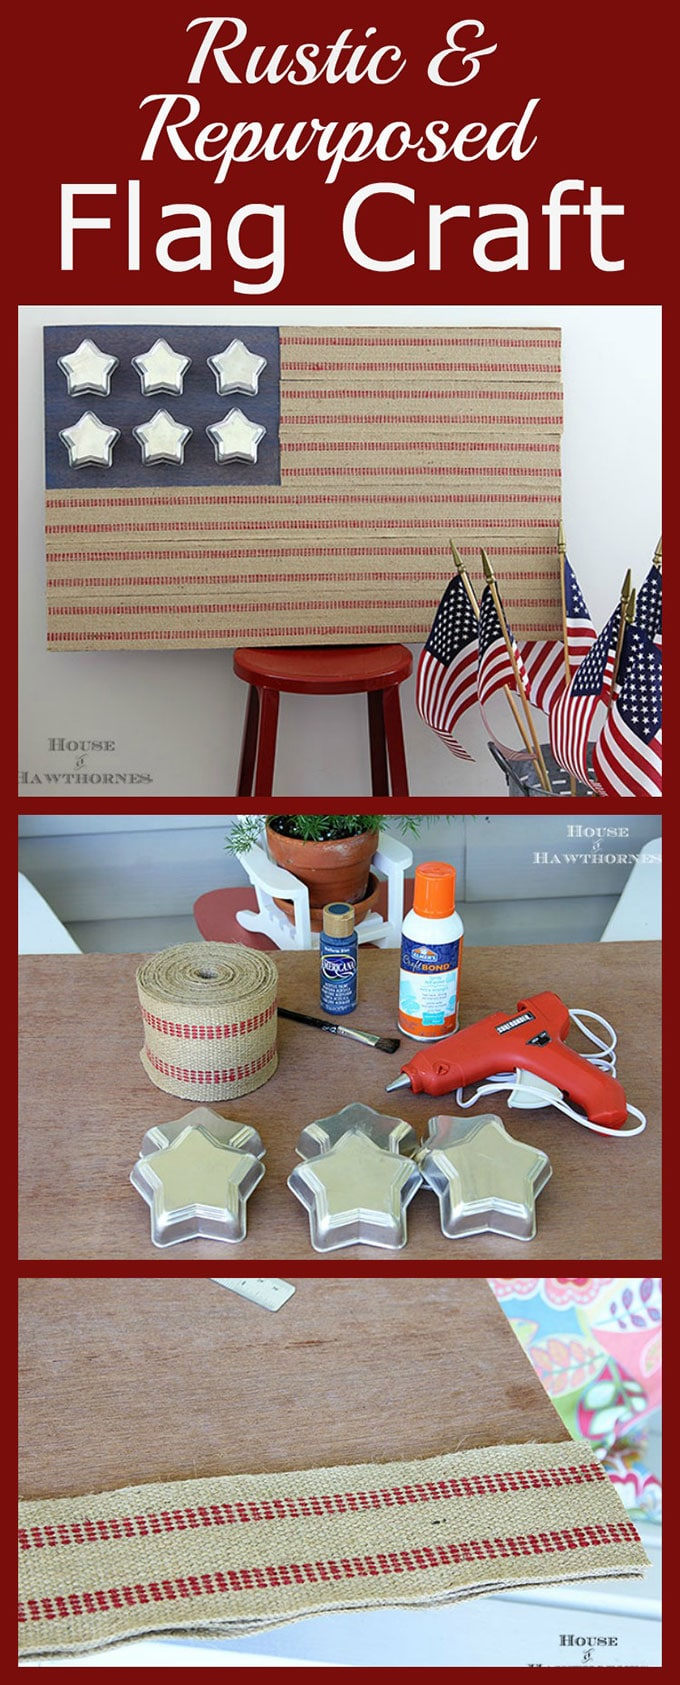 Quick and Easy DIY rustic flag craft made with repurposed items from around the house. A cute rustic farmhouse flag.